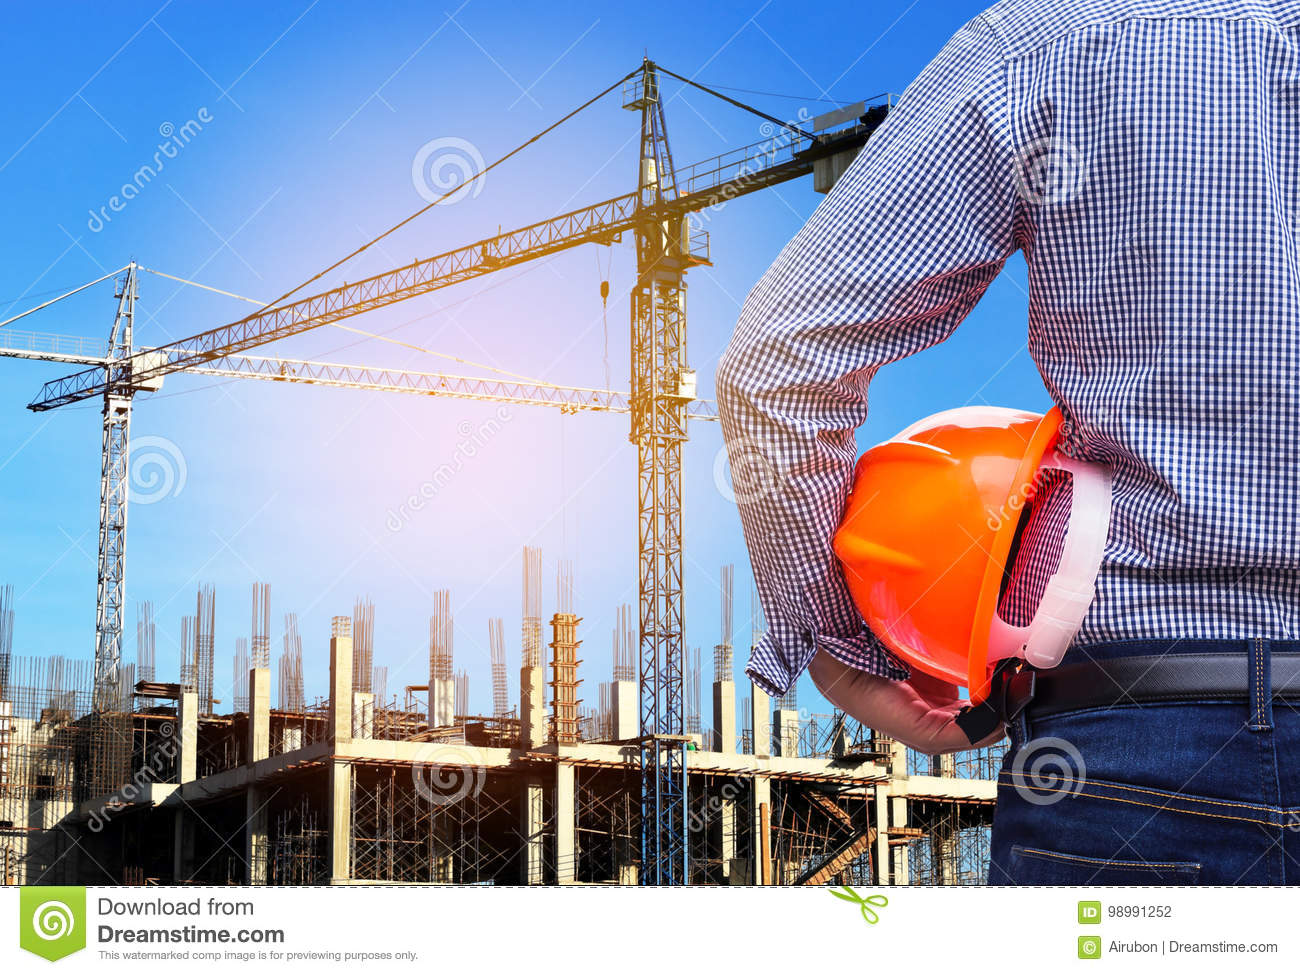 Engineer holding yellow safety helmet in building construction site with crane